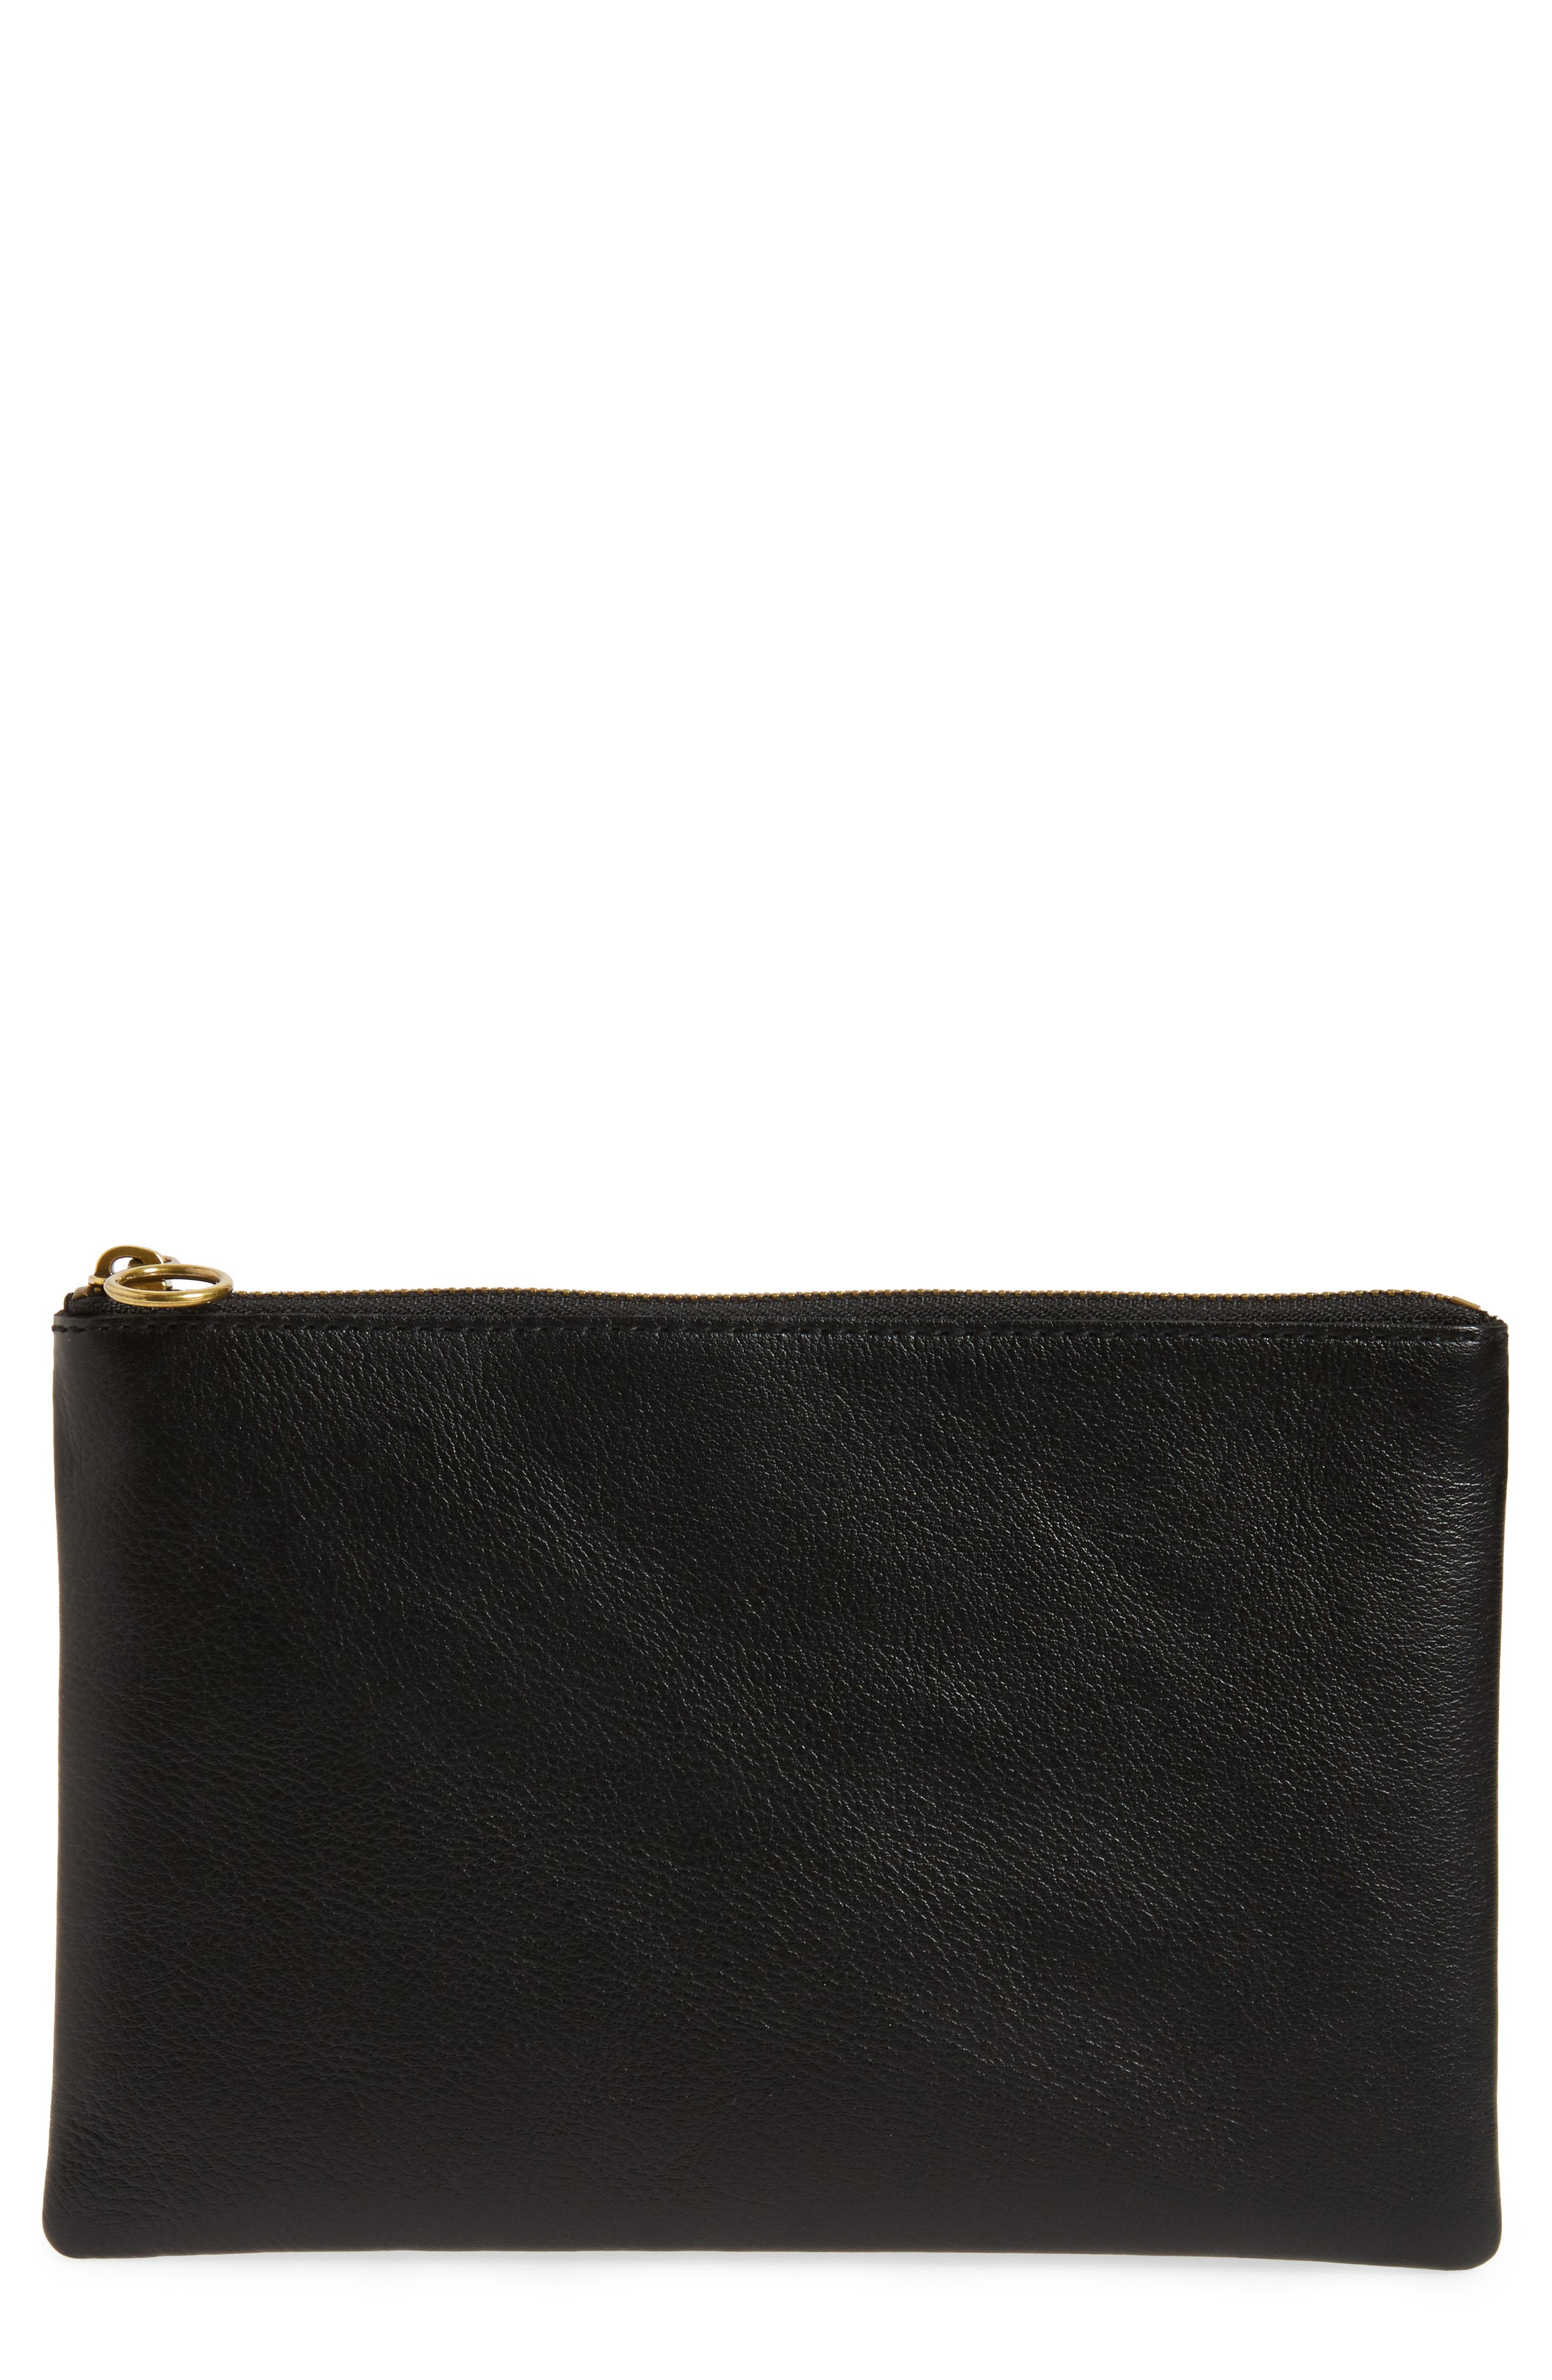 Main Image - Madewell The Leather Pouch Clutch